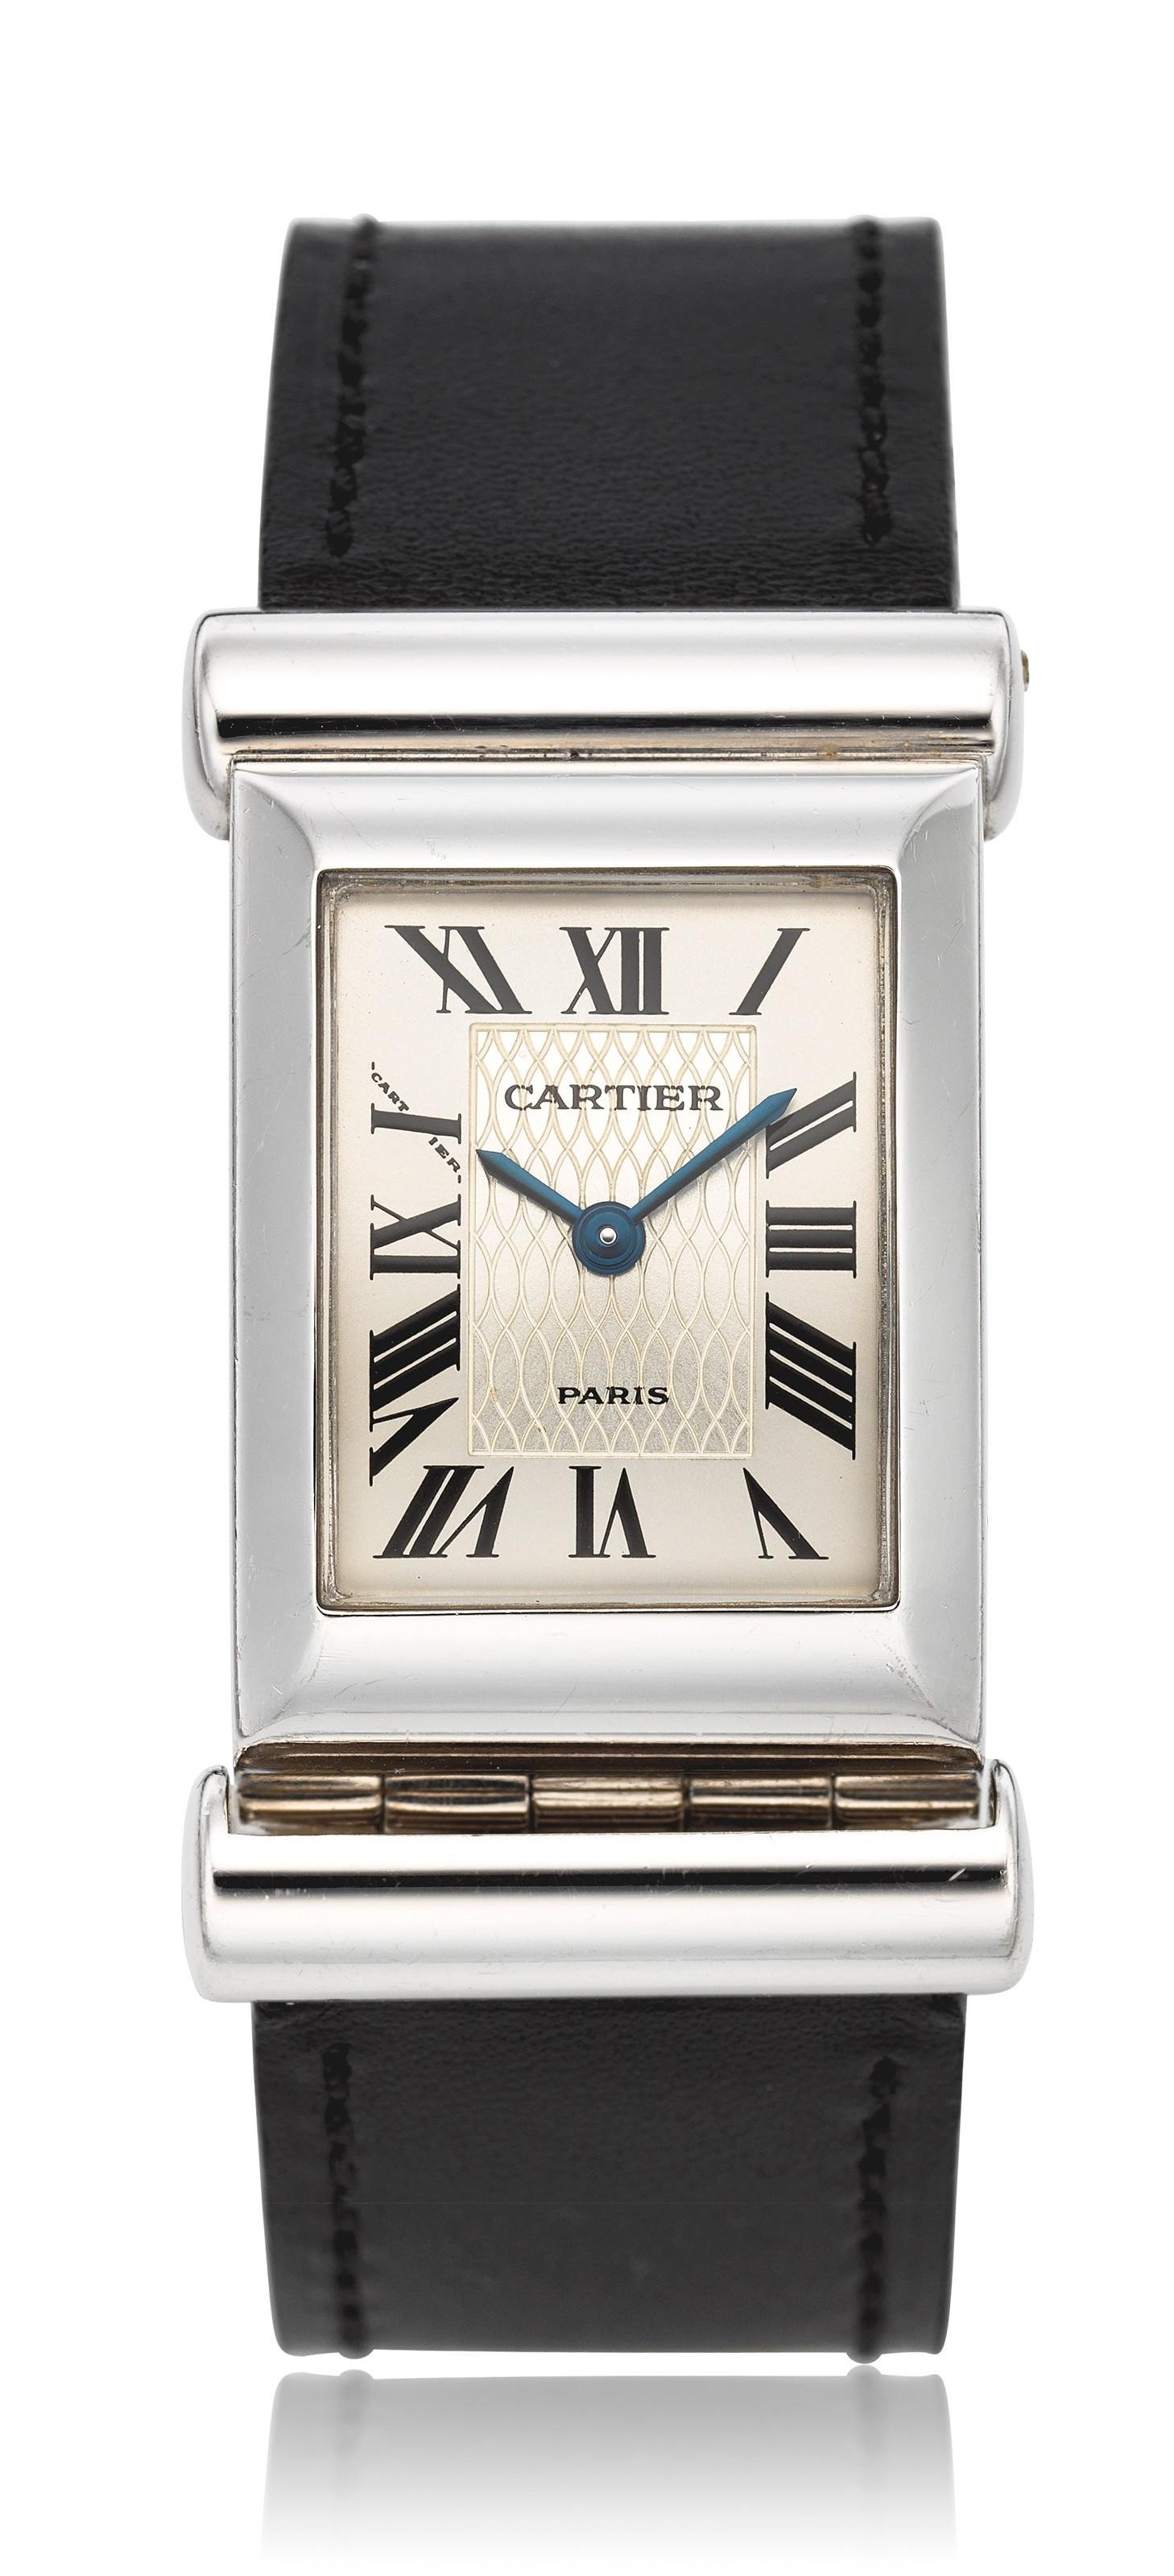 CARTIER, LADIES' 18K 150TH ANNIVERSARY DRIVER'S WATCH,